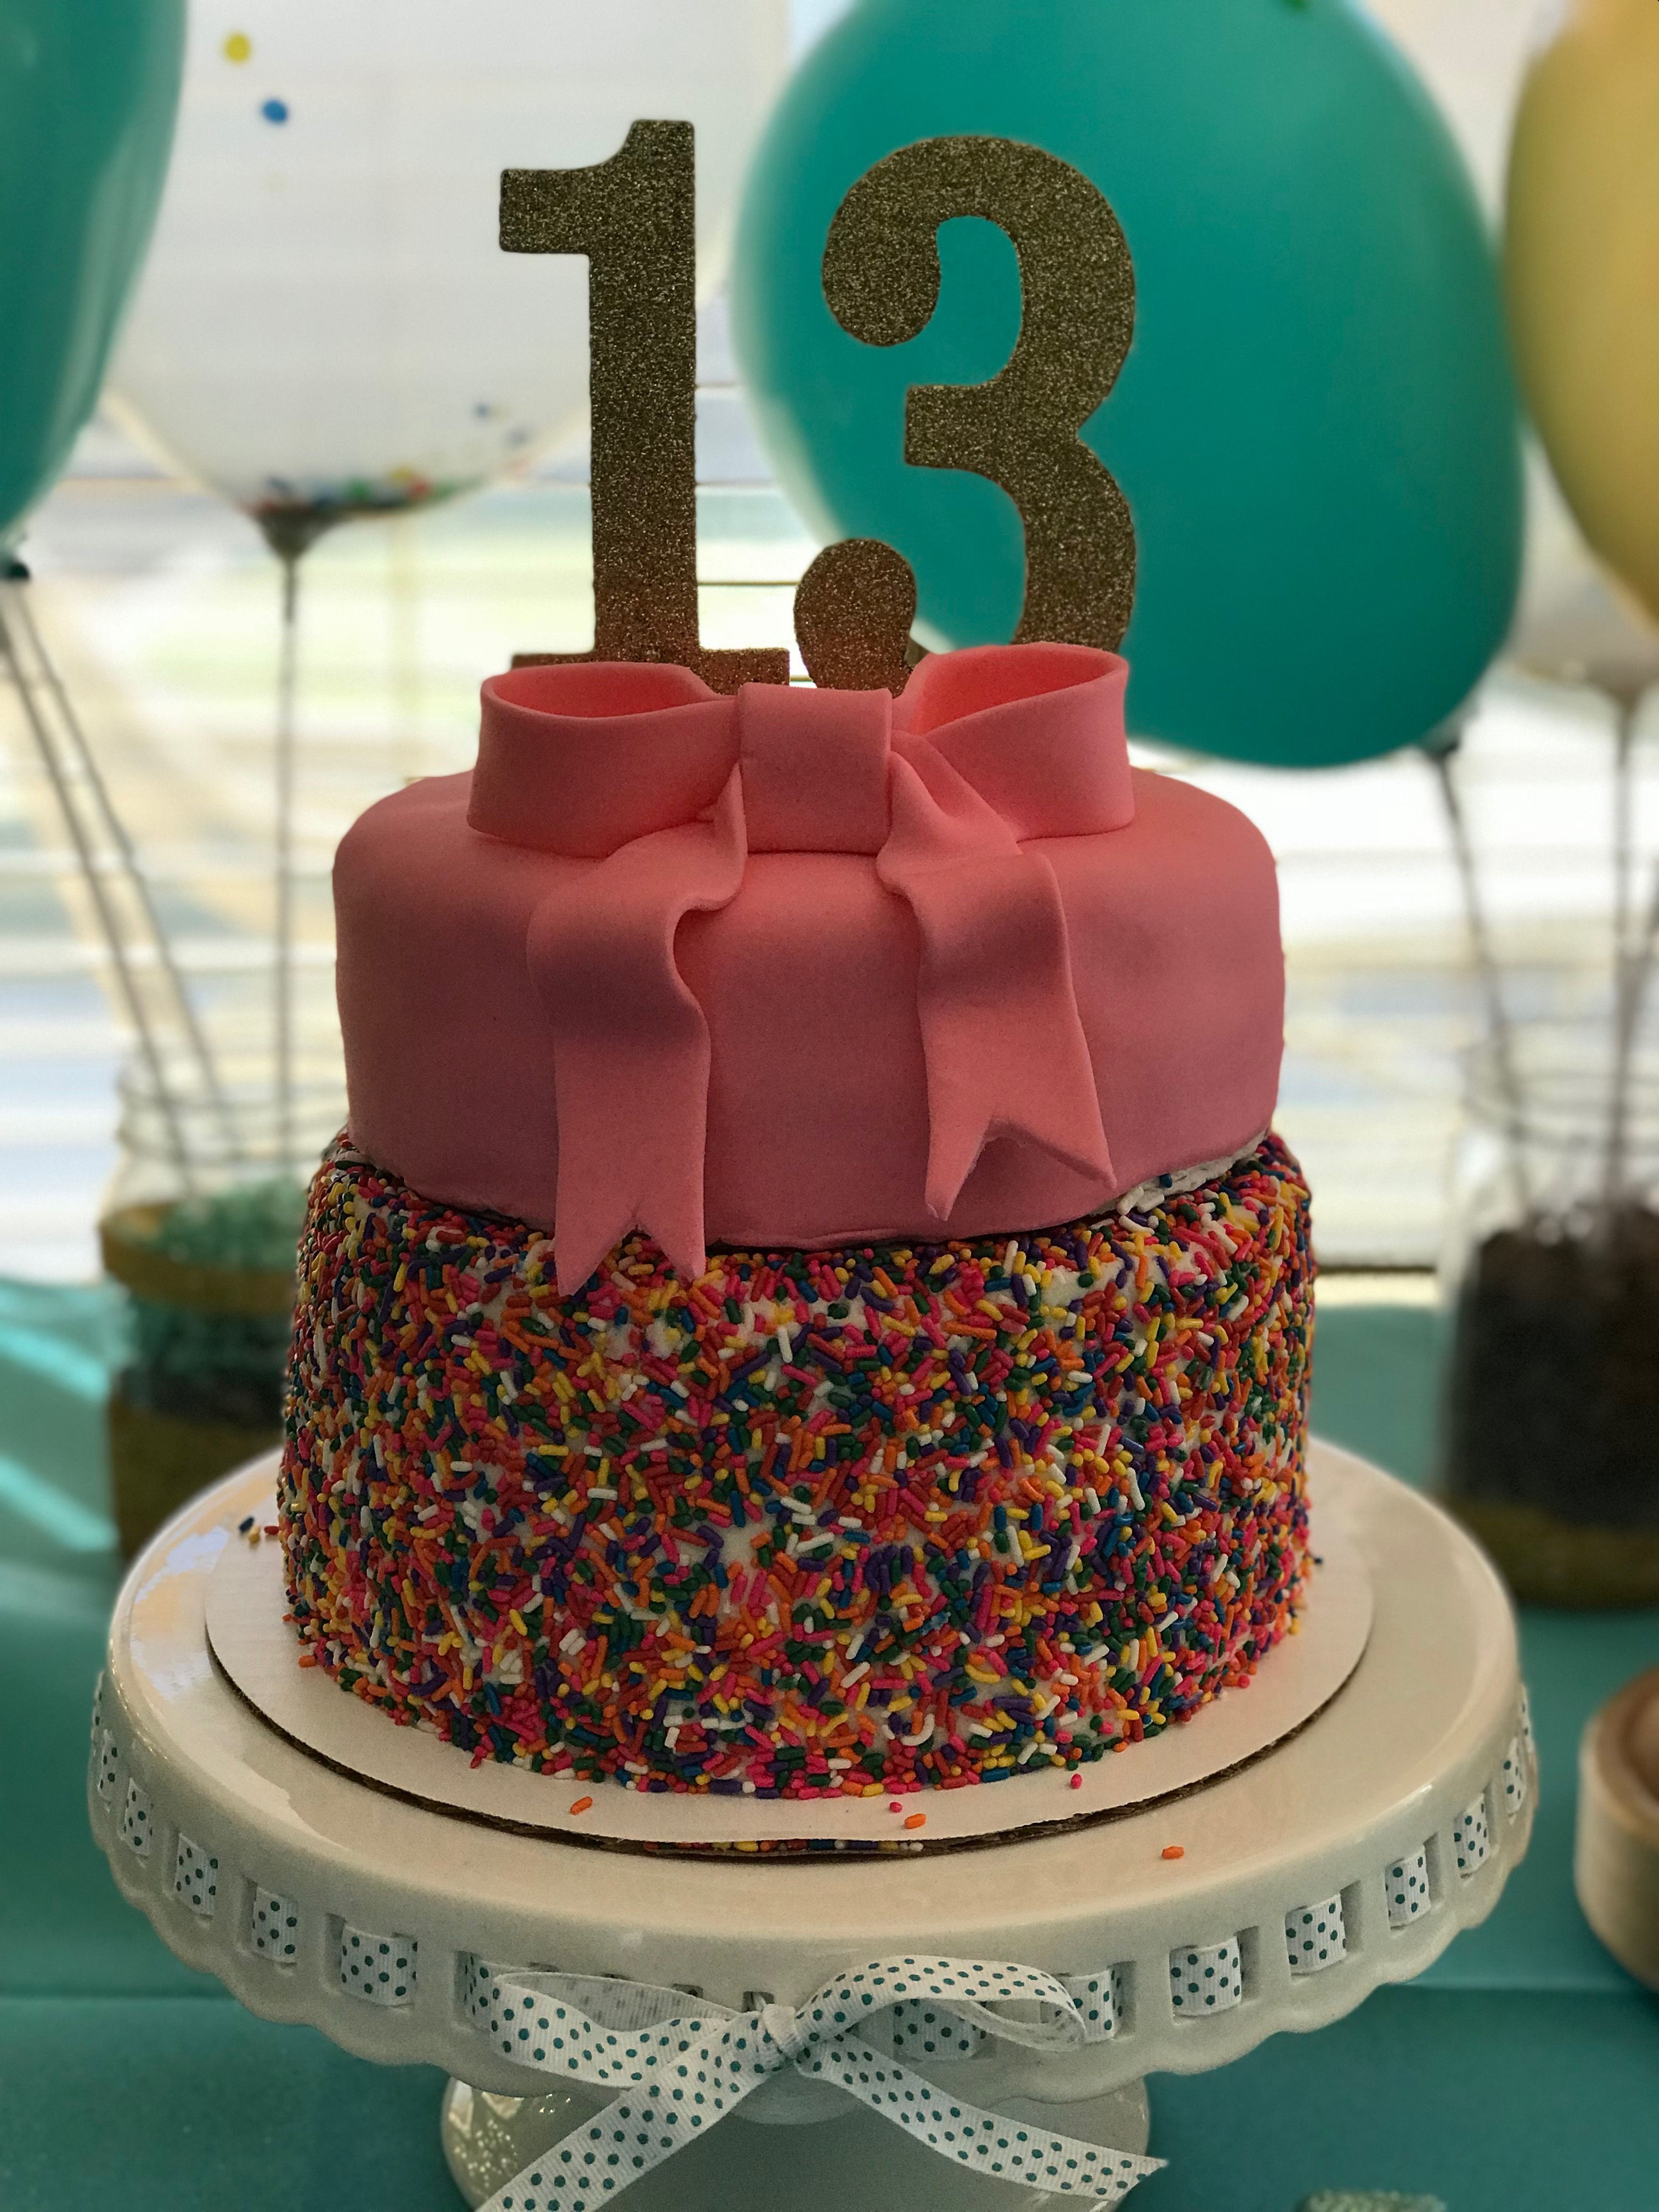 Best ideas about 13 Birthday Cake . Save or Pin Sprinkle Birthday cake for 13 year old girl Now.